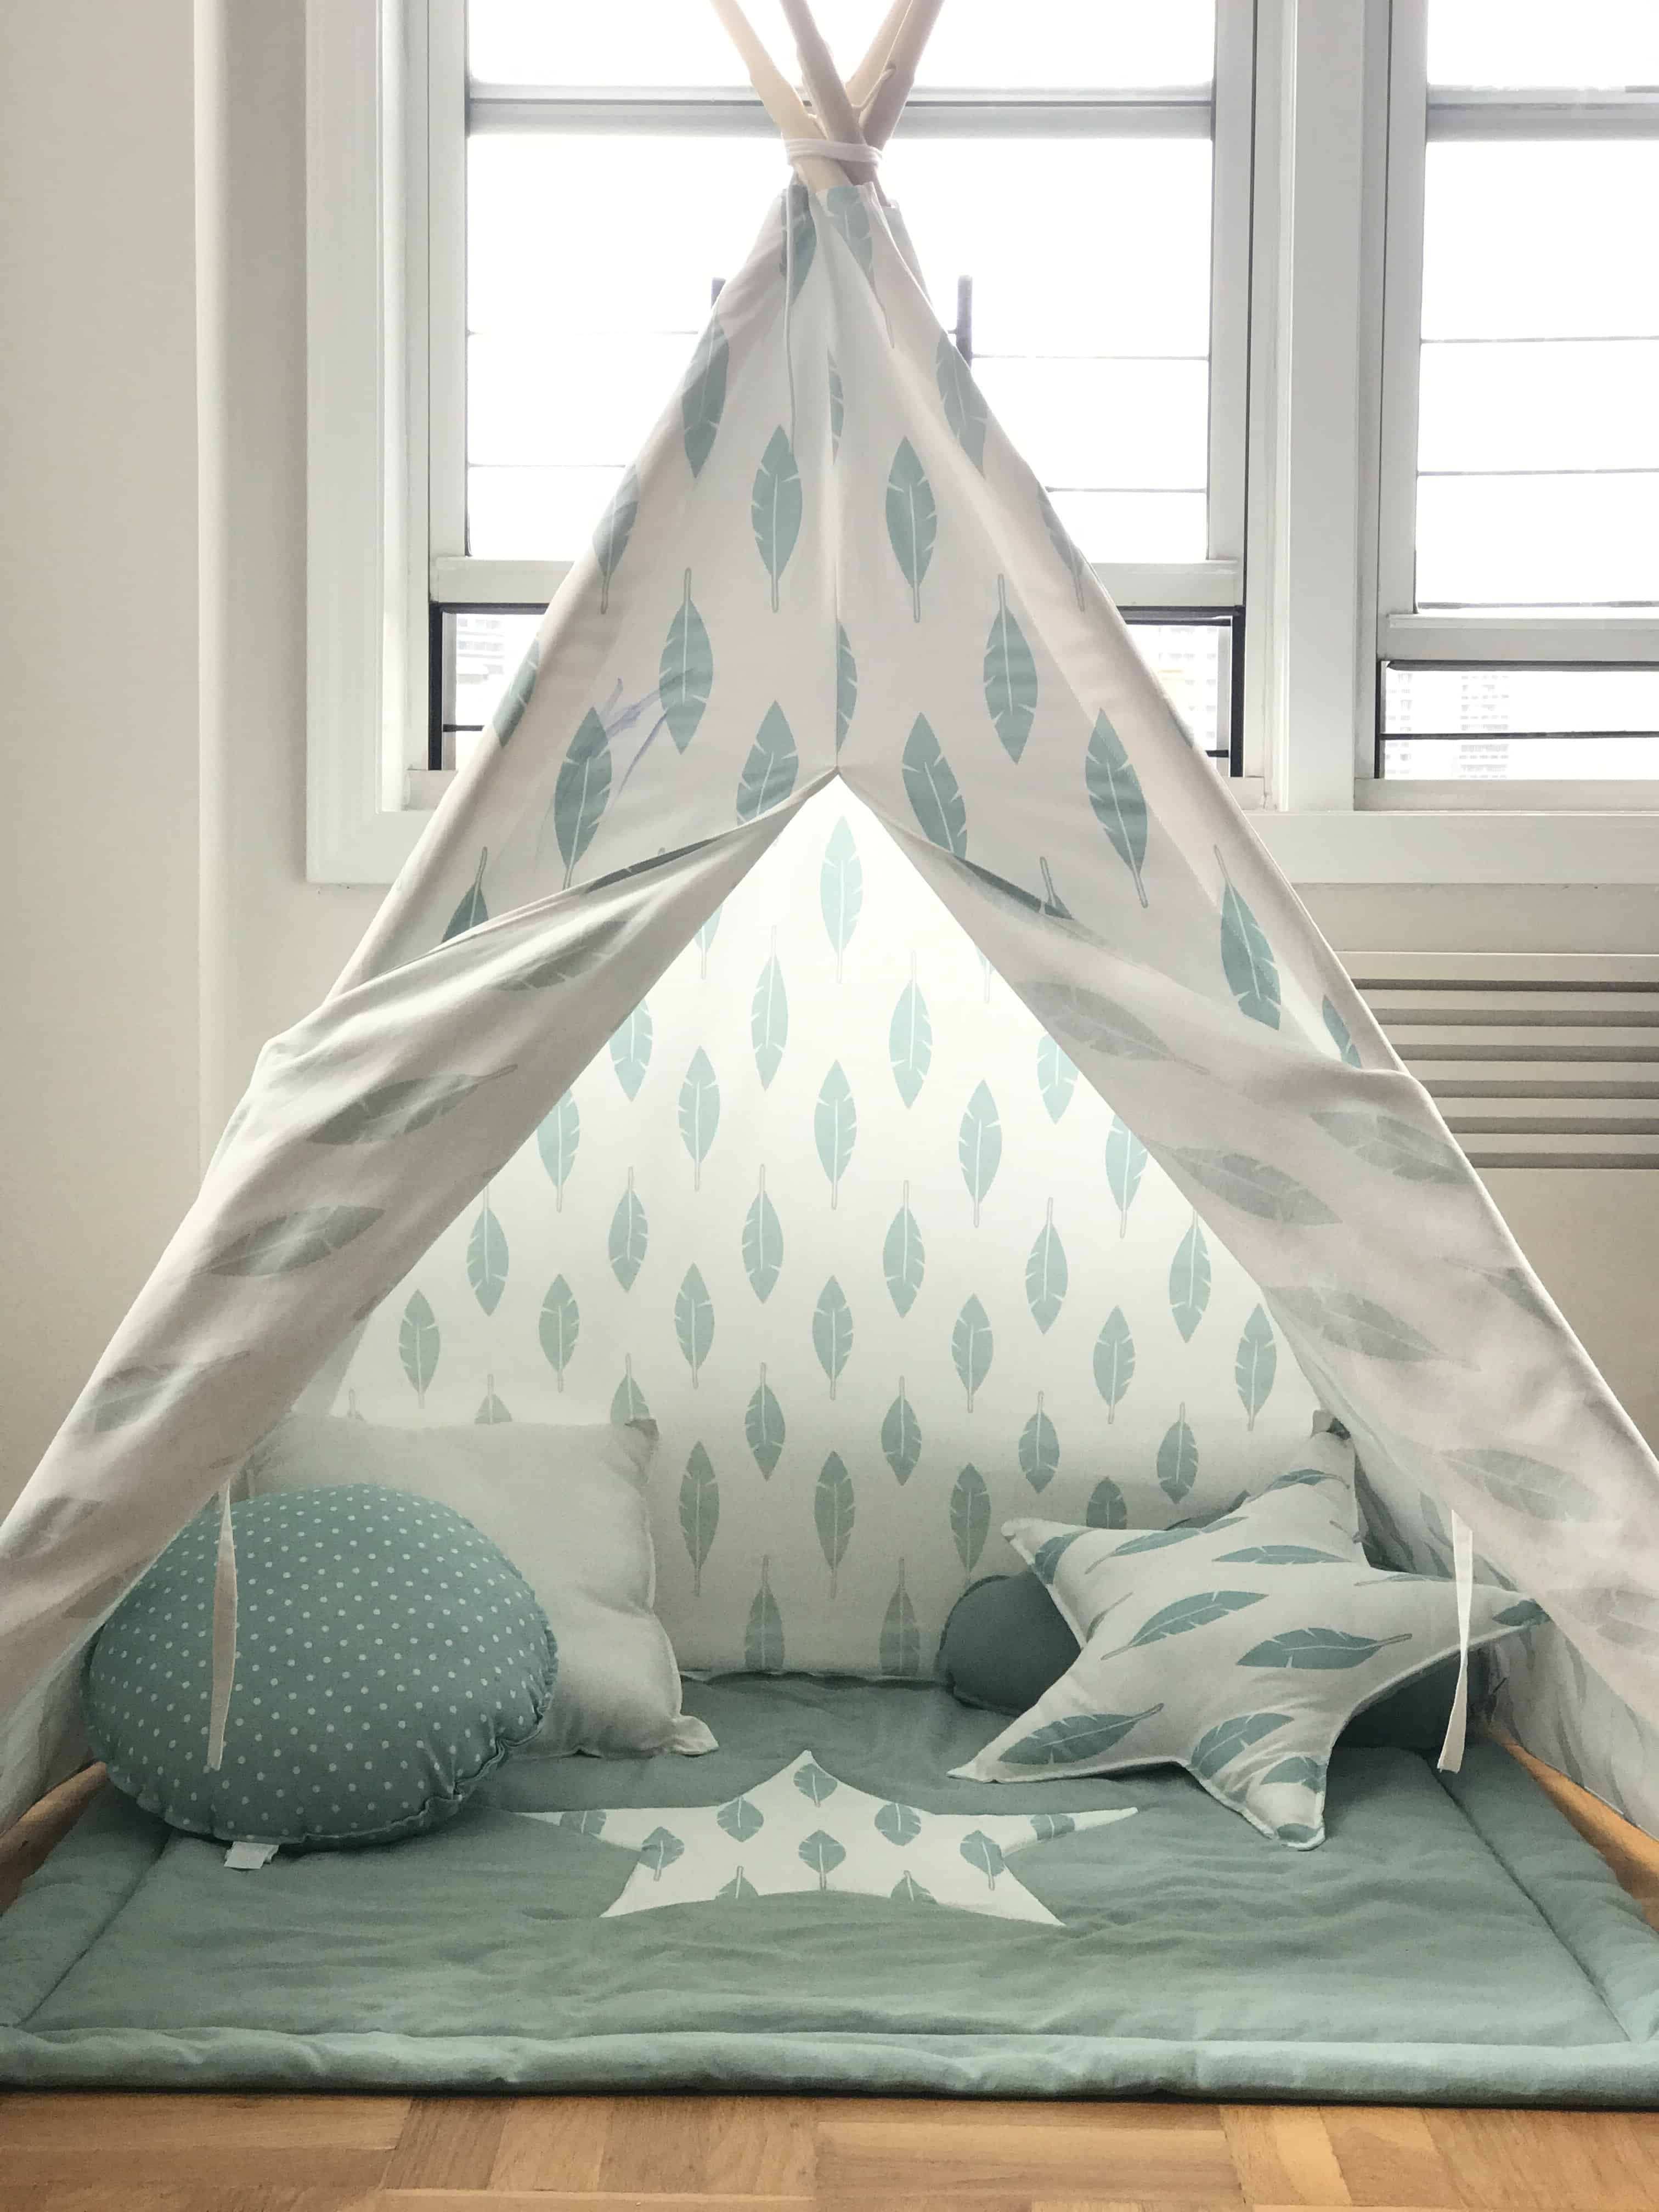 Magnificent Eagle S Might See Marker Stain On Good Thing Teepee Tent Kids Teepee Joy Review Mommy To Max Kids Teepee Tents Cheap Kids Teepee Tent baby Kids Teepee Tent